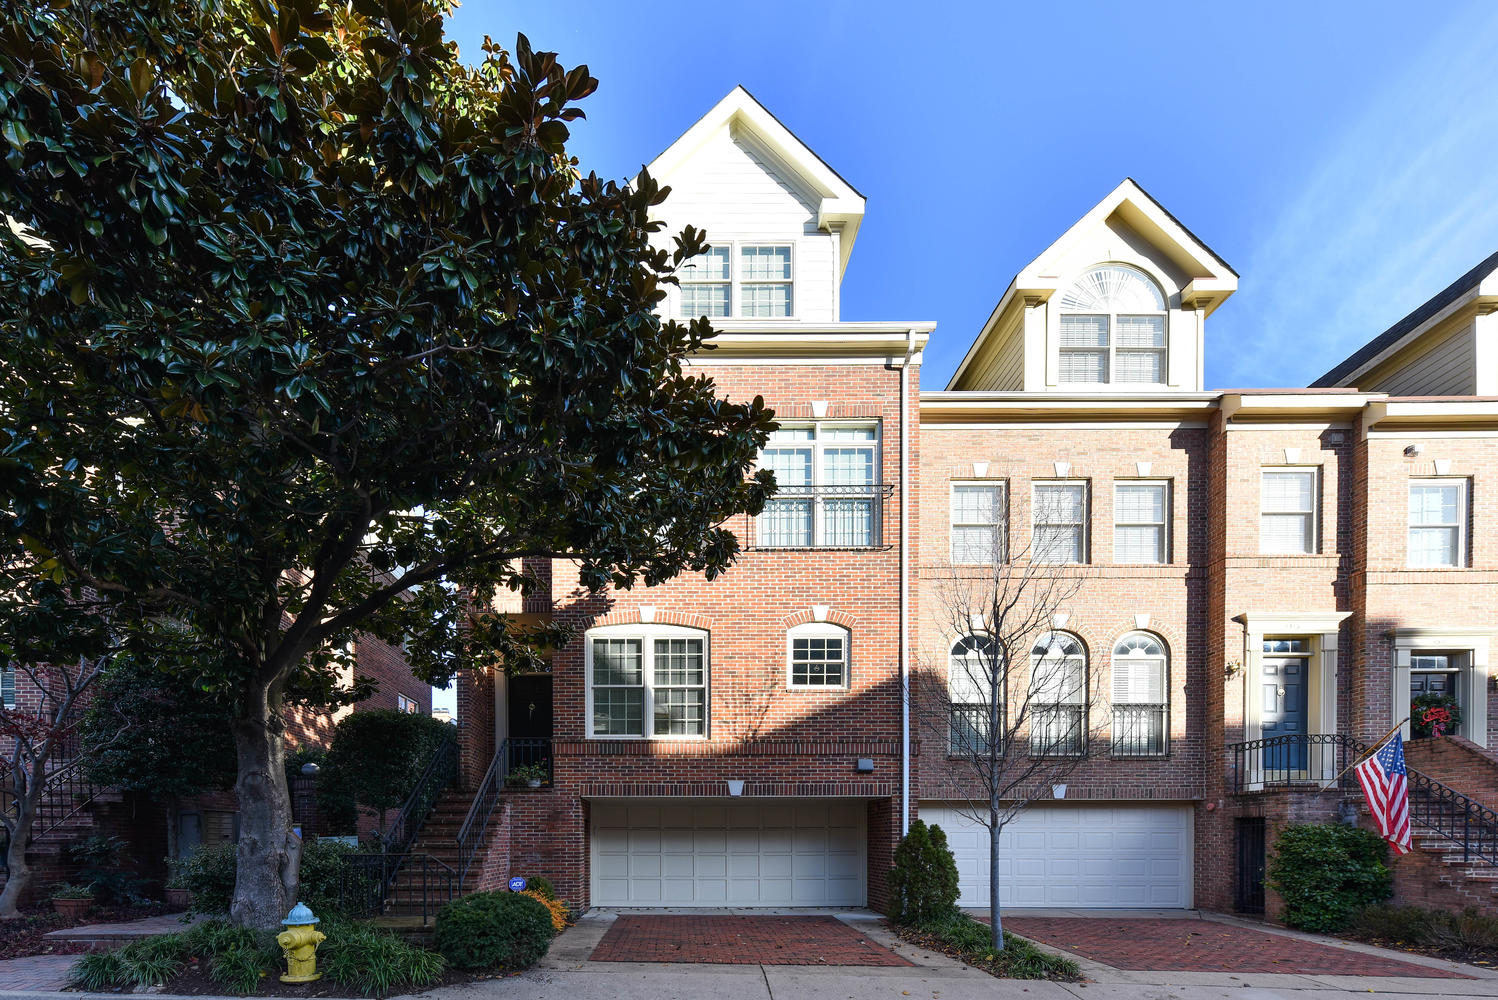 Stunning end unit luxury townhome in sought-after Highgate in the urban village of Rosslyn in North Arlington. For more information, please contact us.